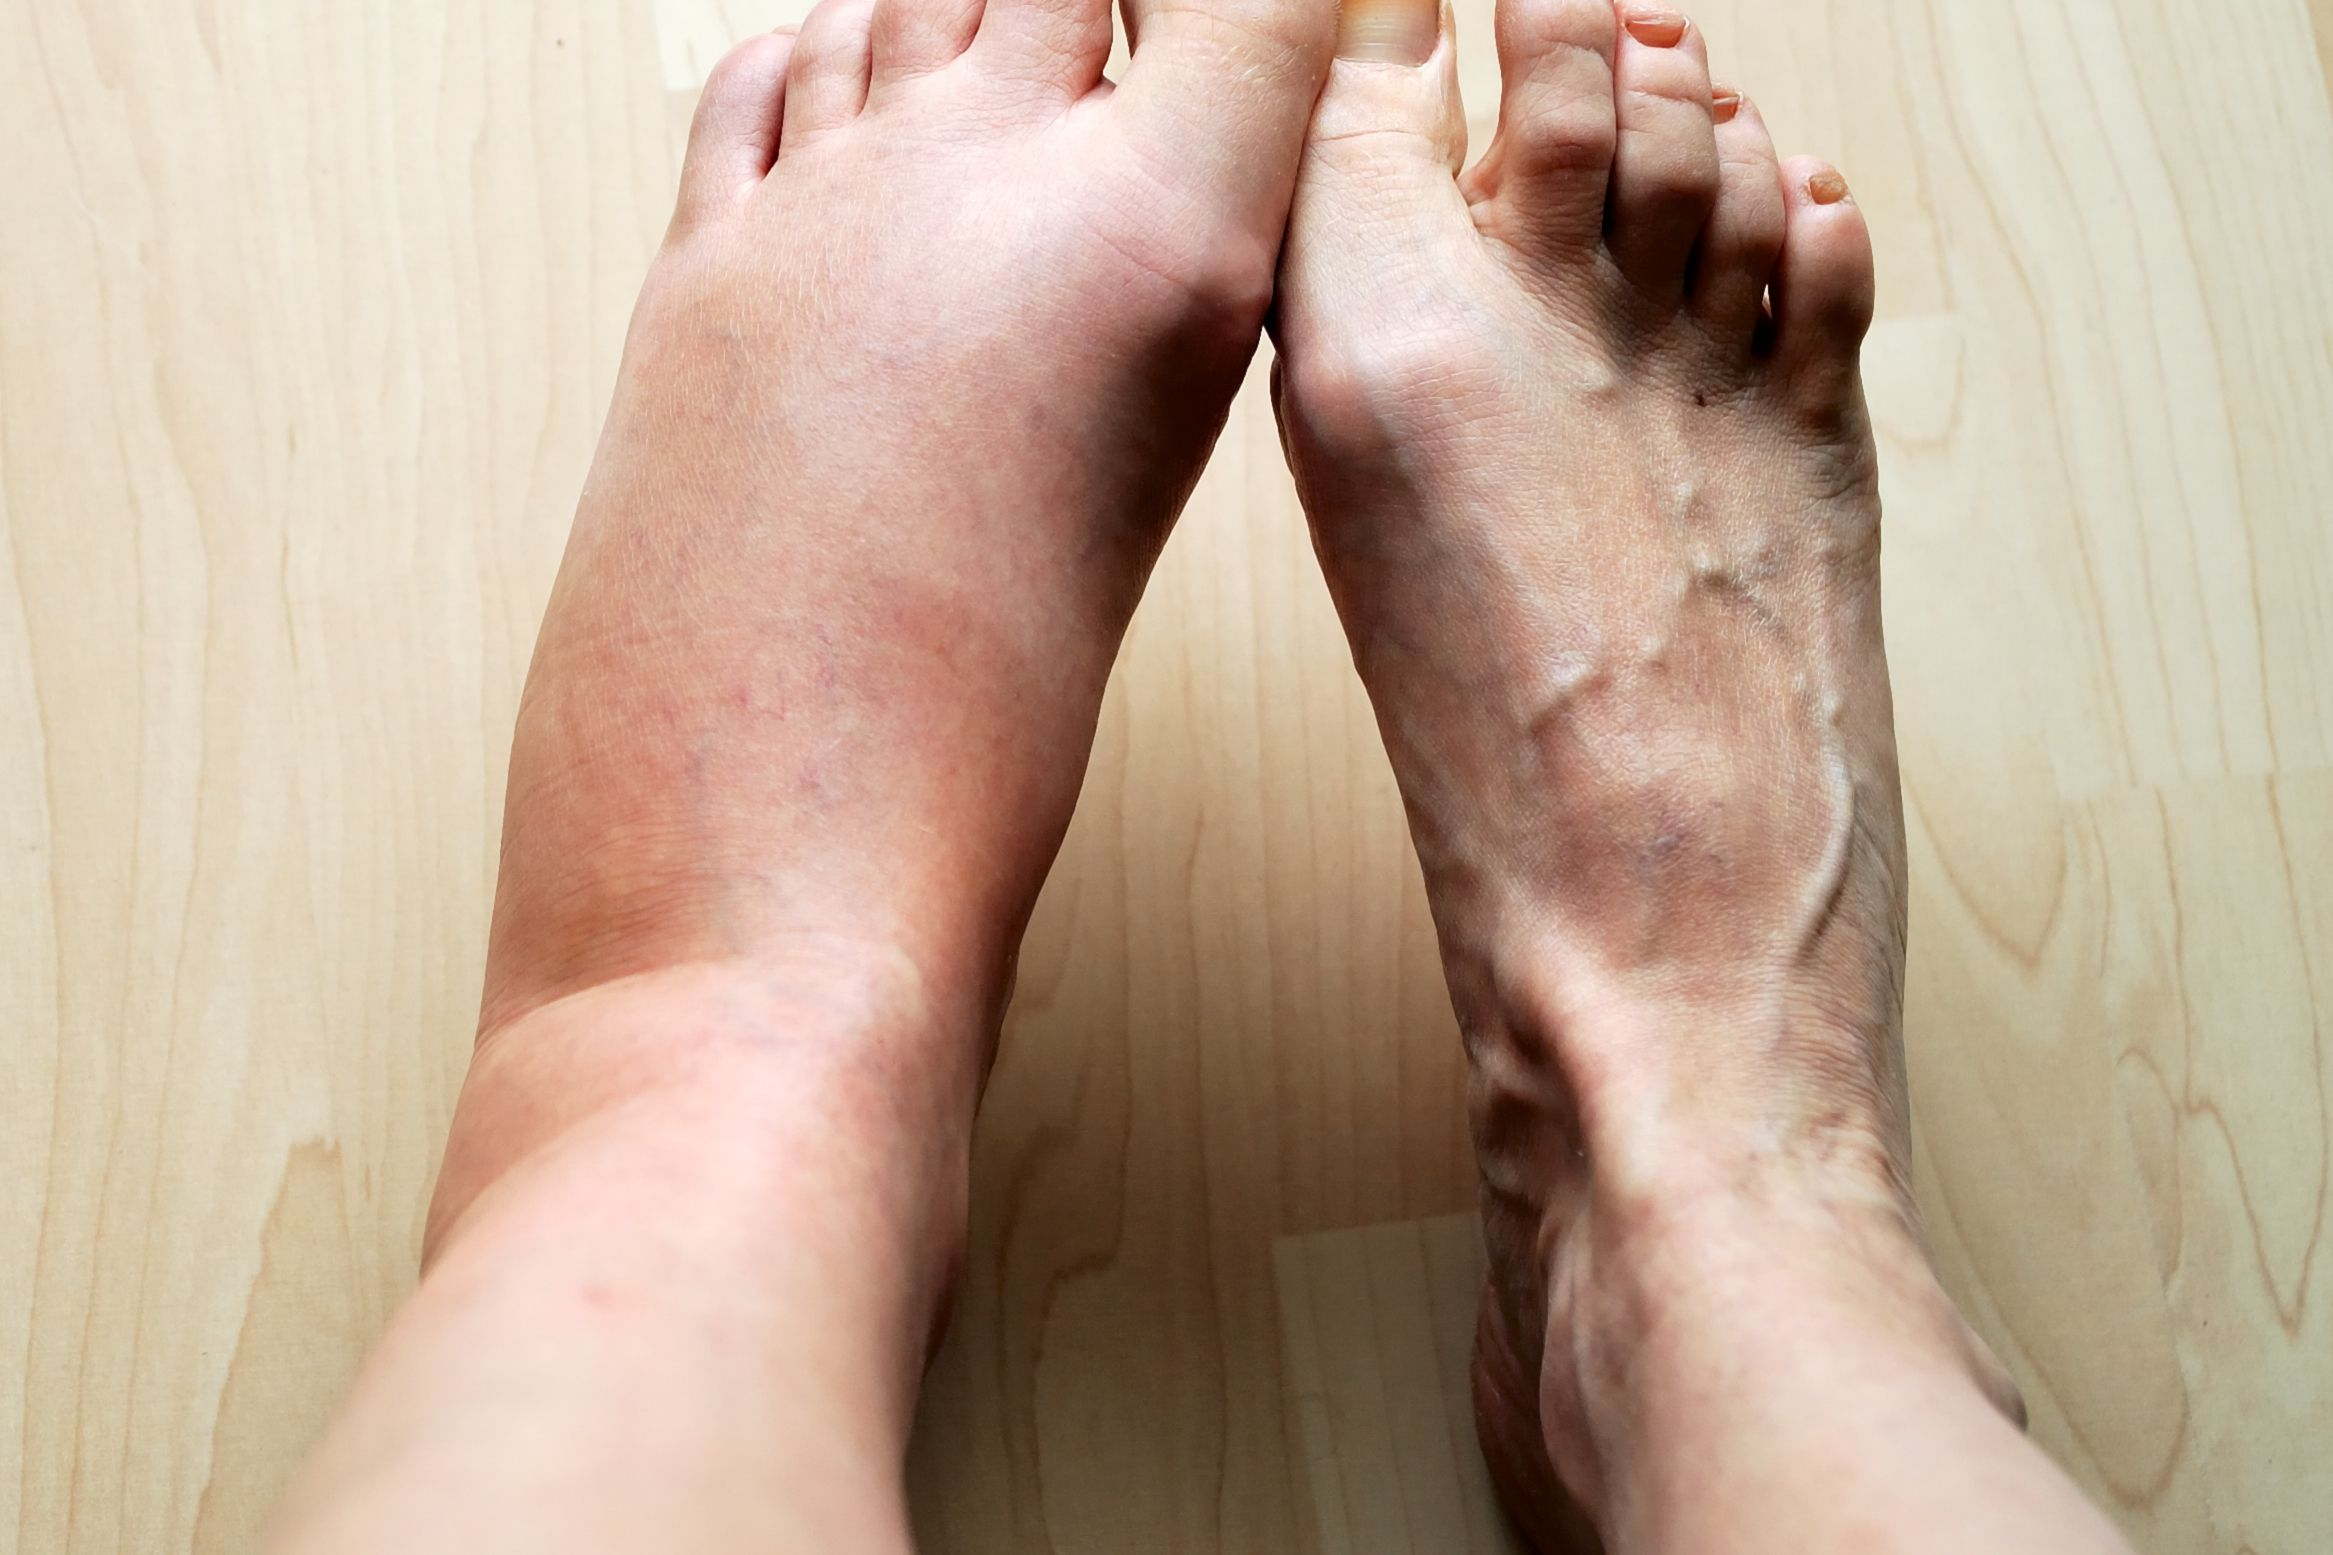 Causes Swollen Feet Accompanied By Shortness Of Breath?